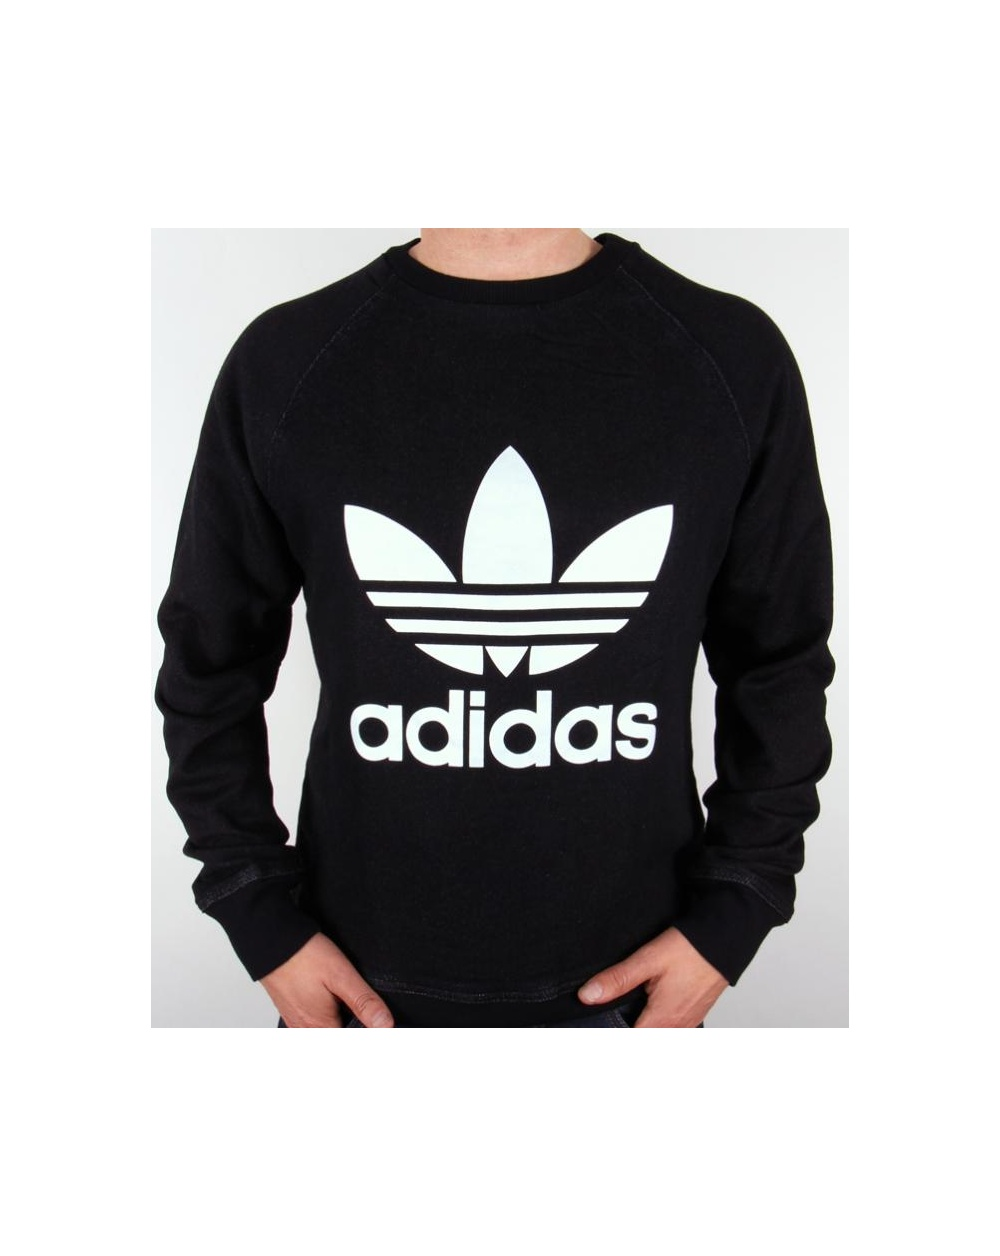 adidas originals denim crew neck sweatshirt black. Black Bedroom Furniture Sets. Home Design Ideas